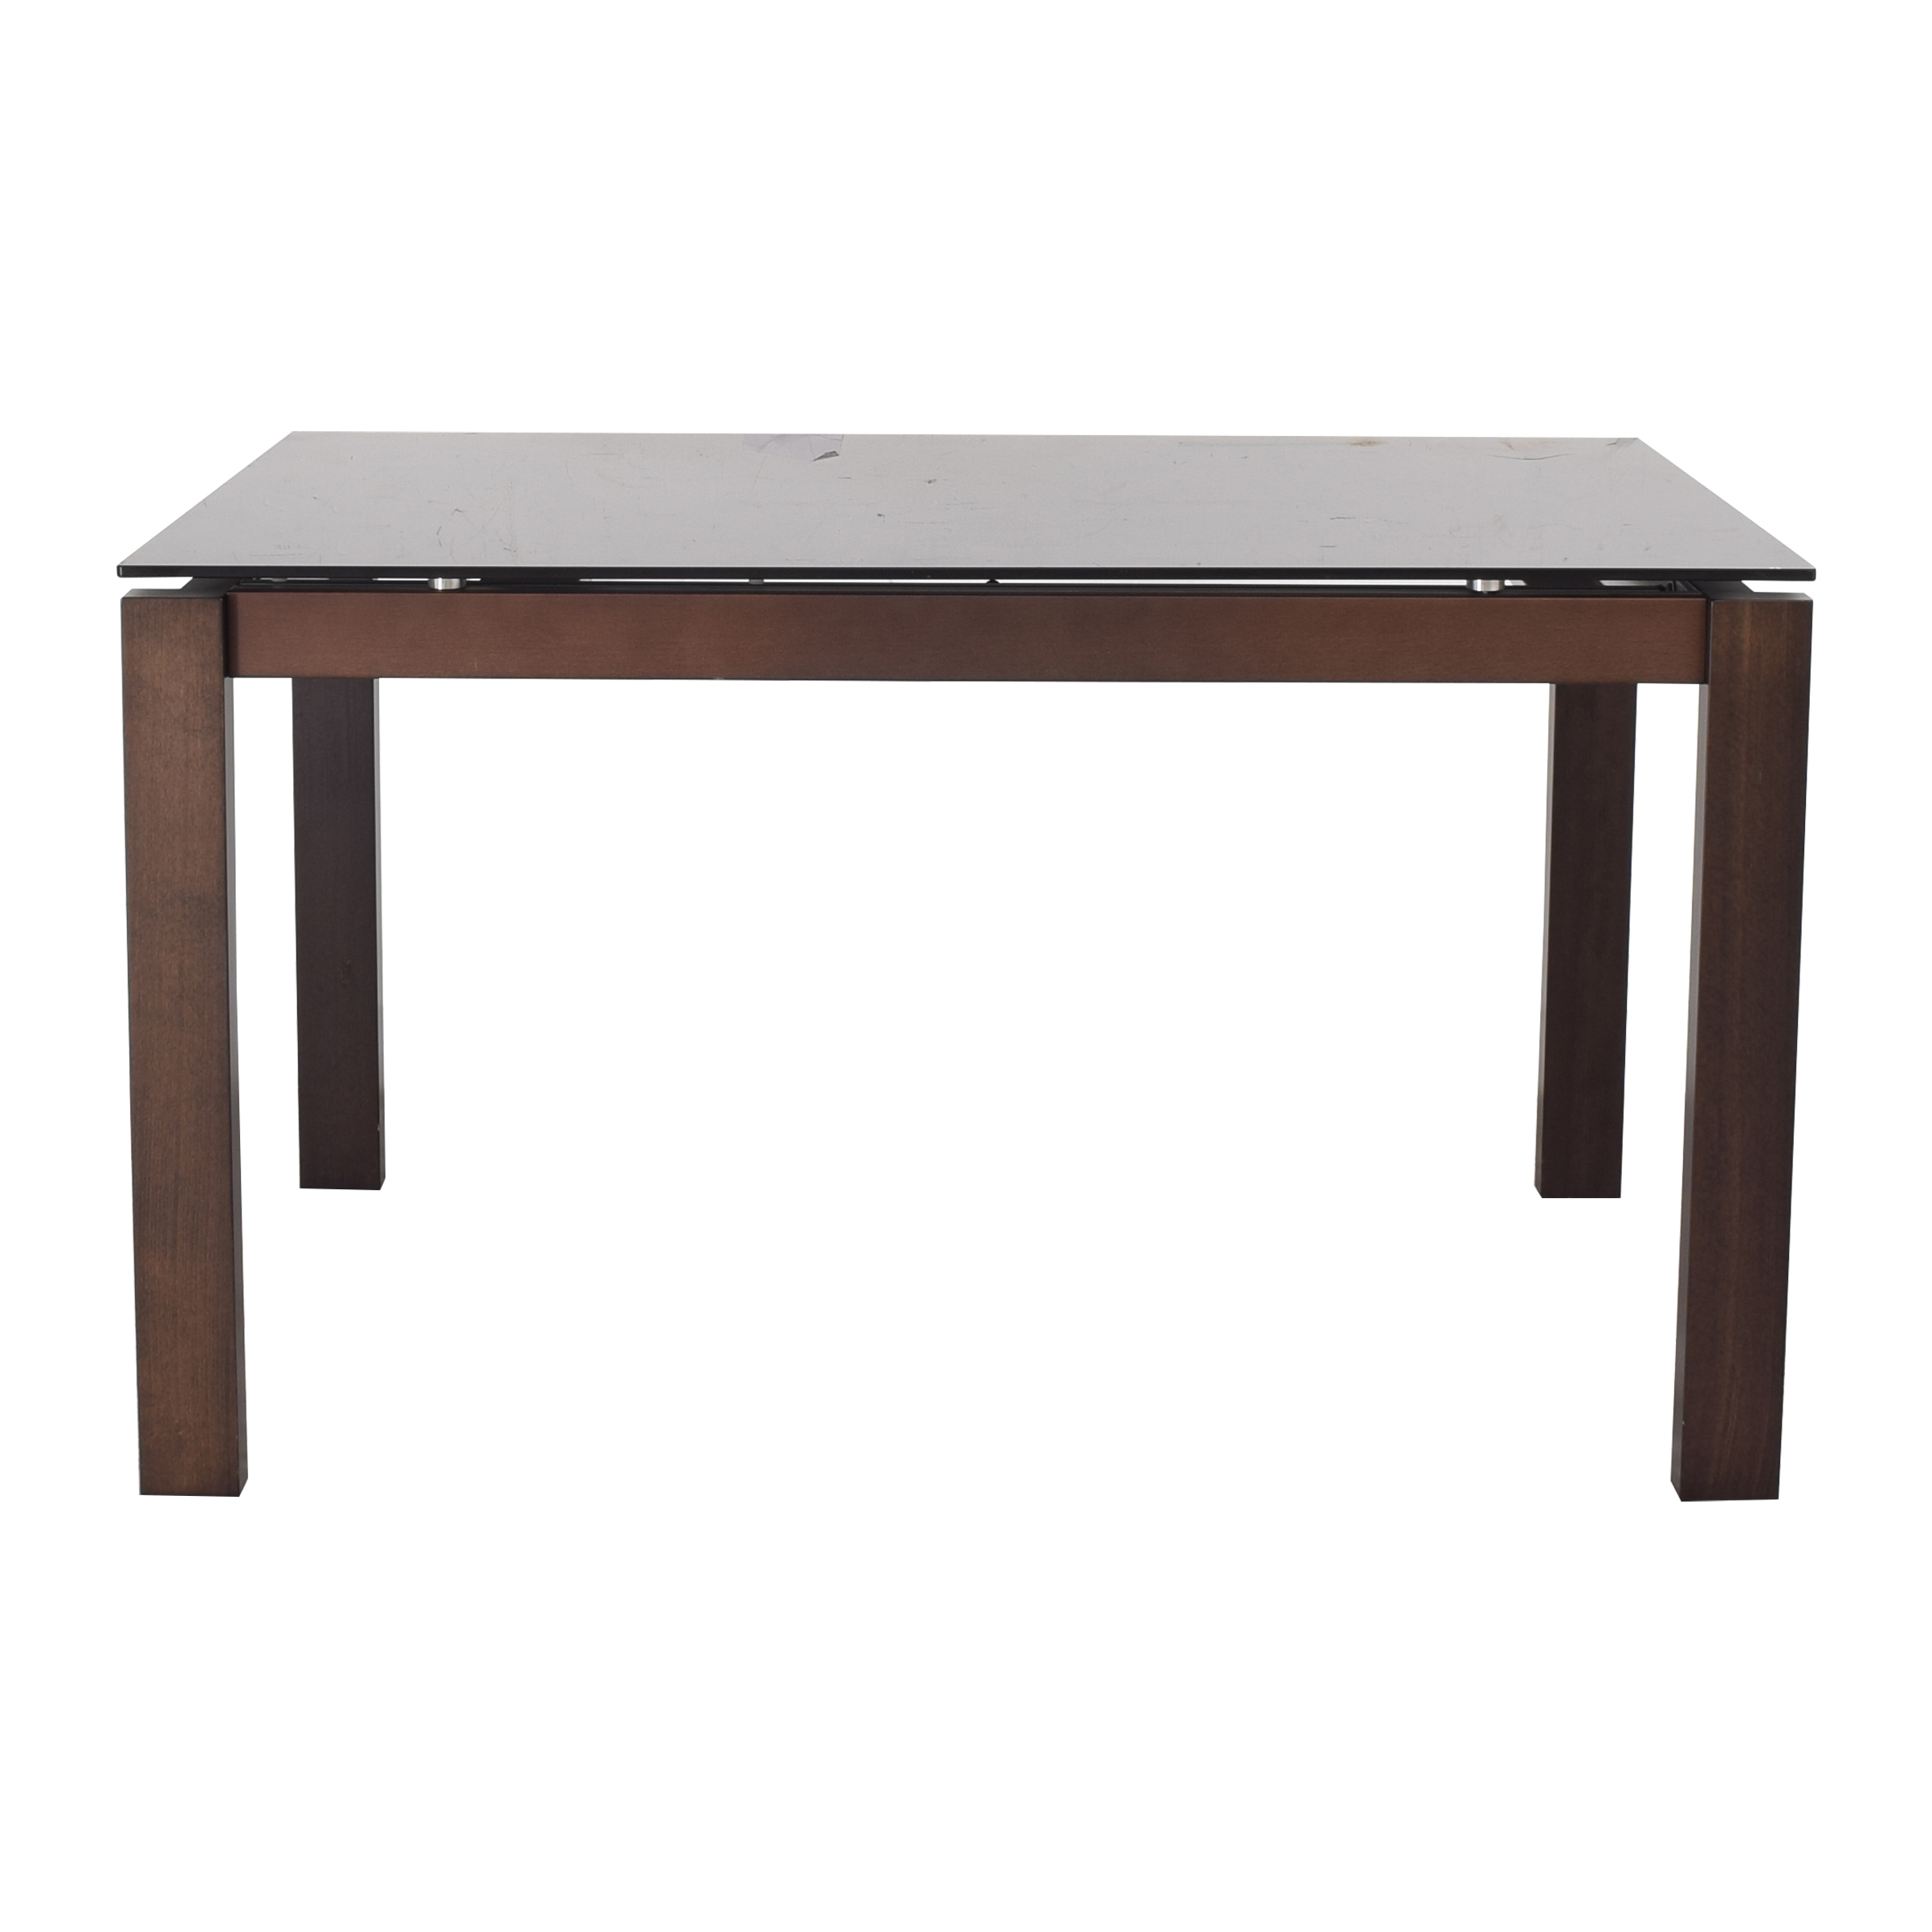 Calligaris Calligaris Extending Dining Table Tables